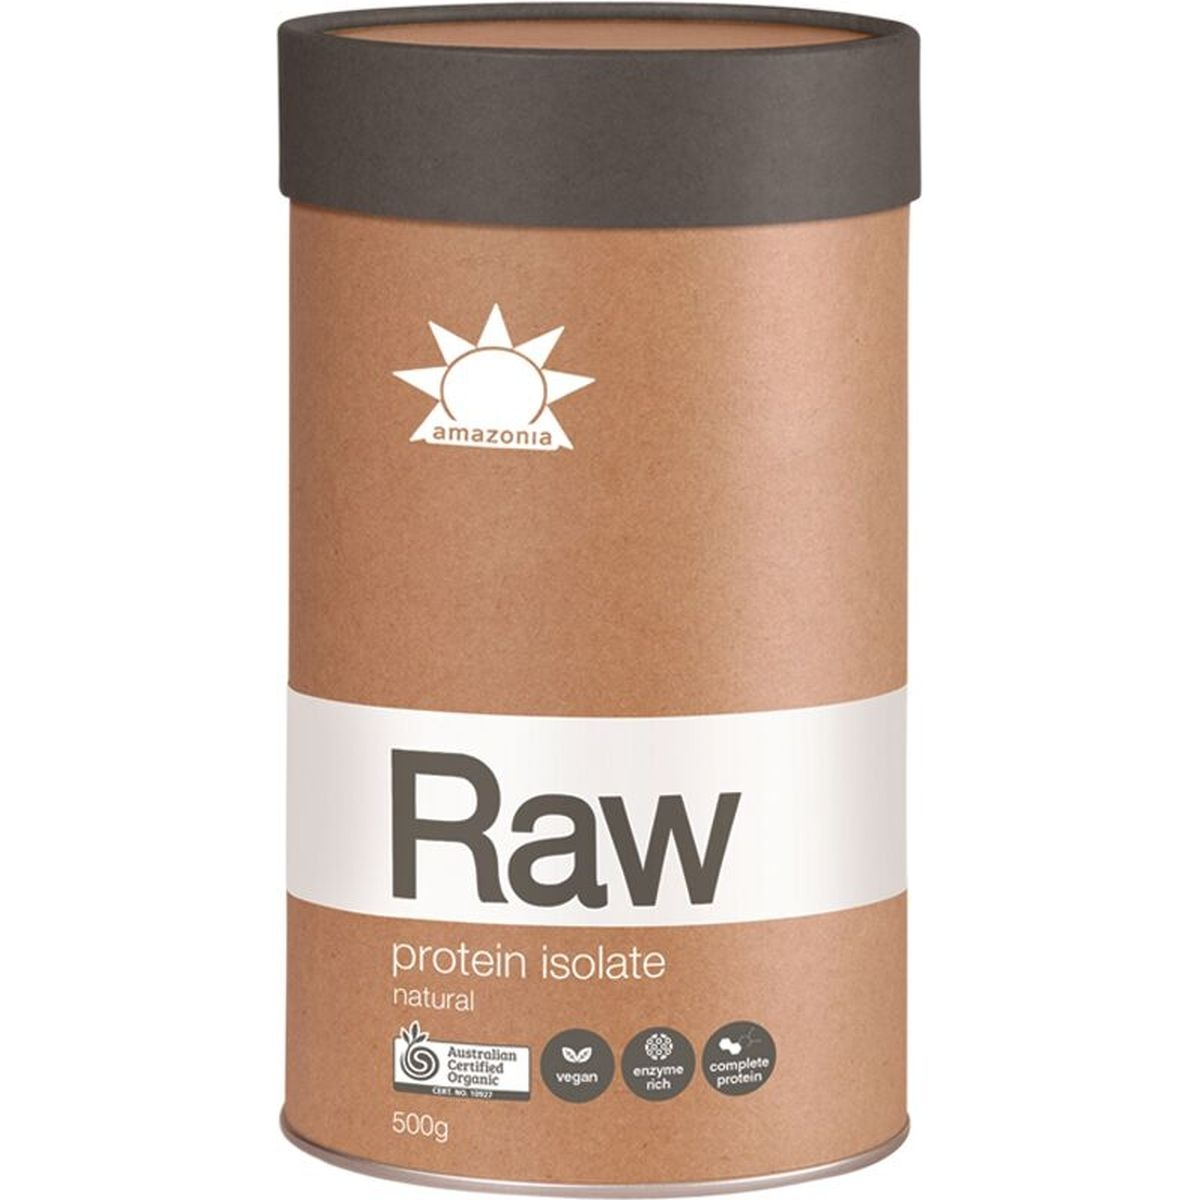 Raw Protein Isolate (Natural) 500g